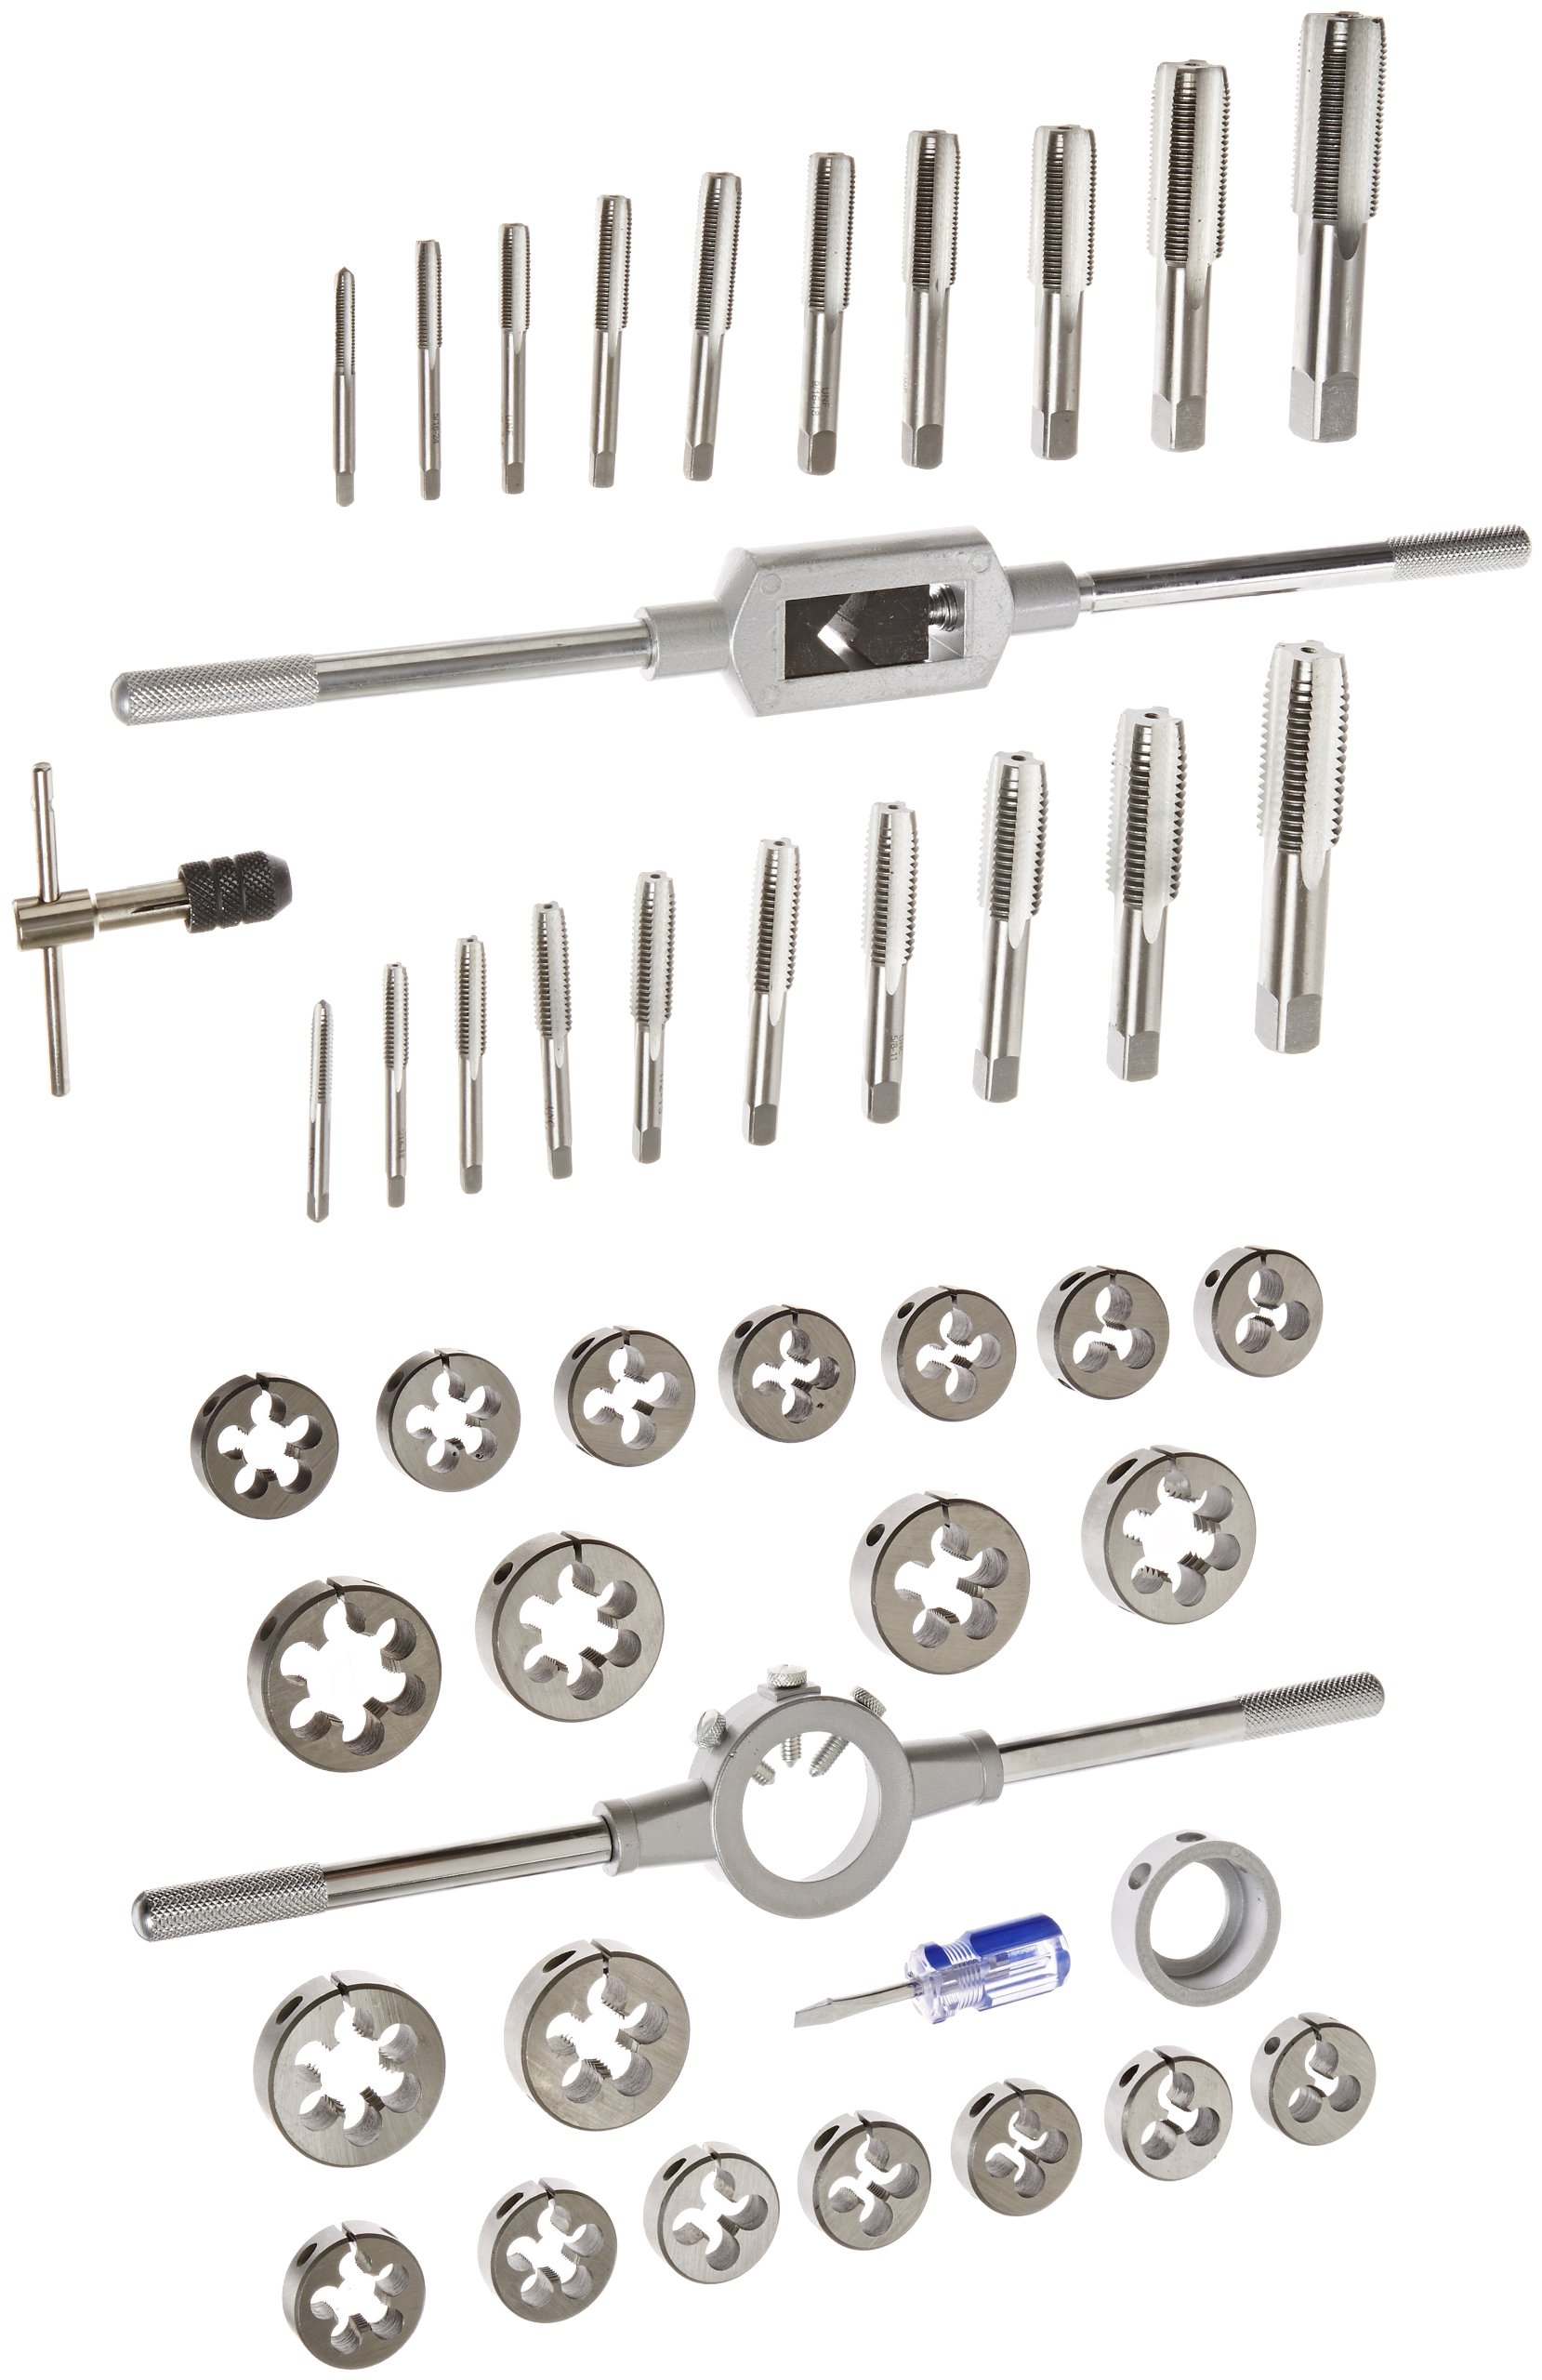 Drill America 45 Piece Carbon Steel Tap and Die Set (1/4'' - 1'', NC and NF), DWT Series by Drill America